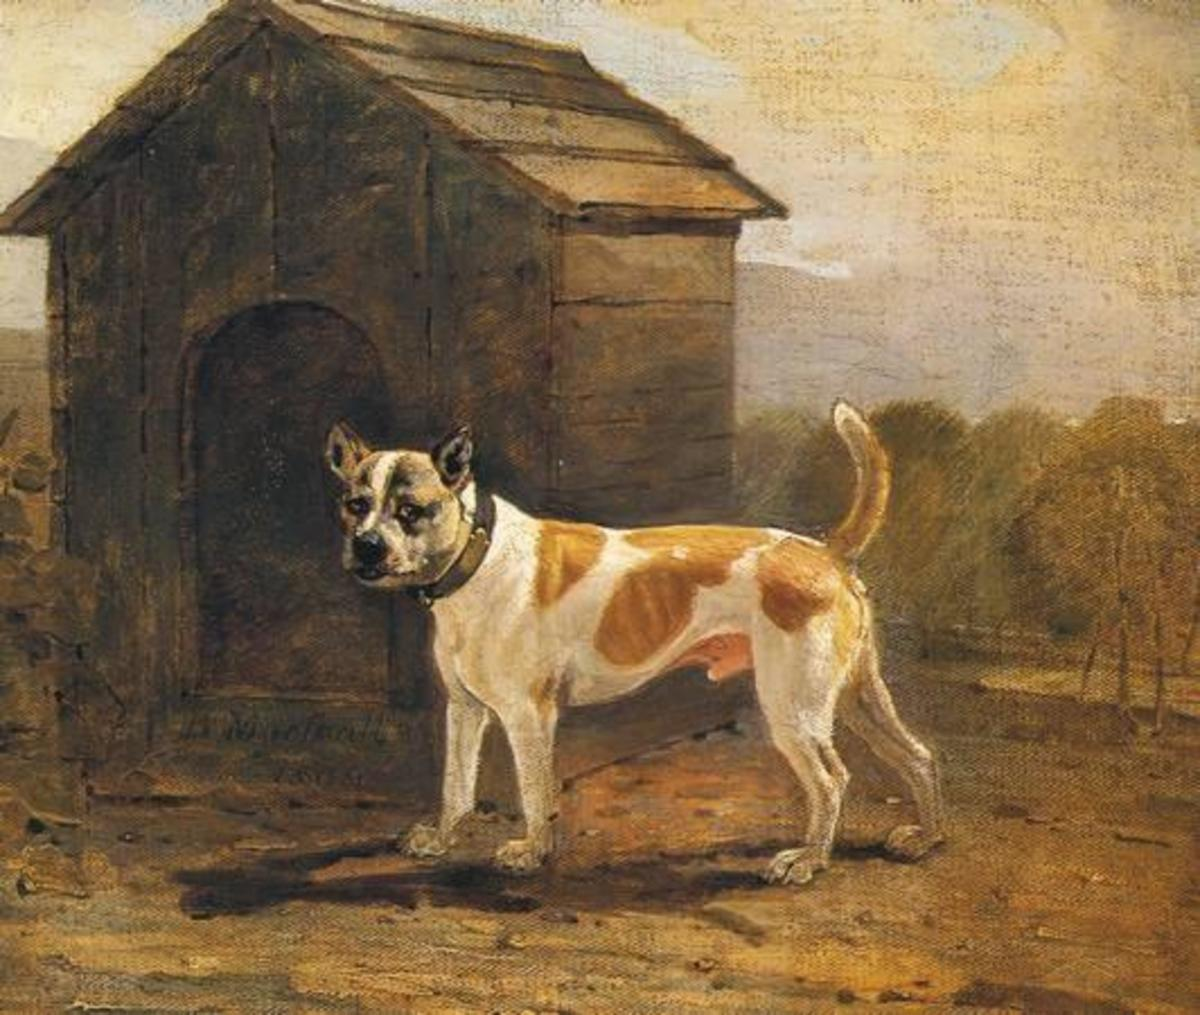 A painting of a bulldog from the early 1800's